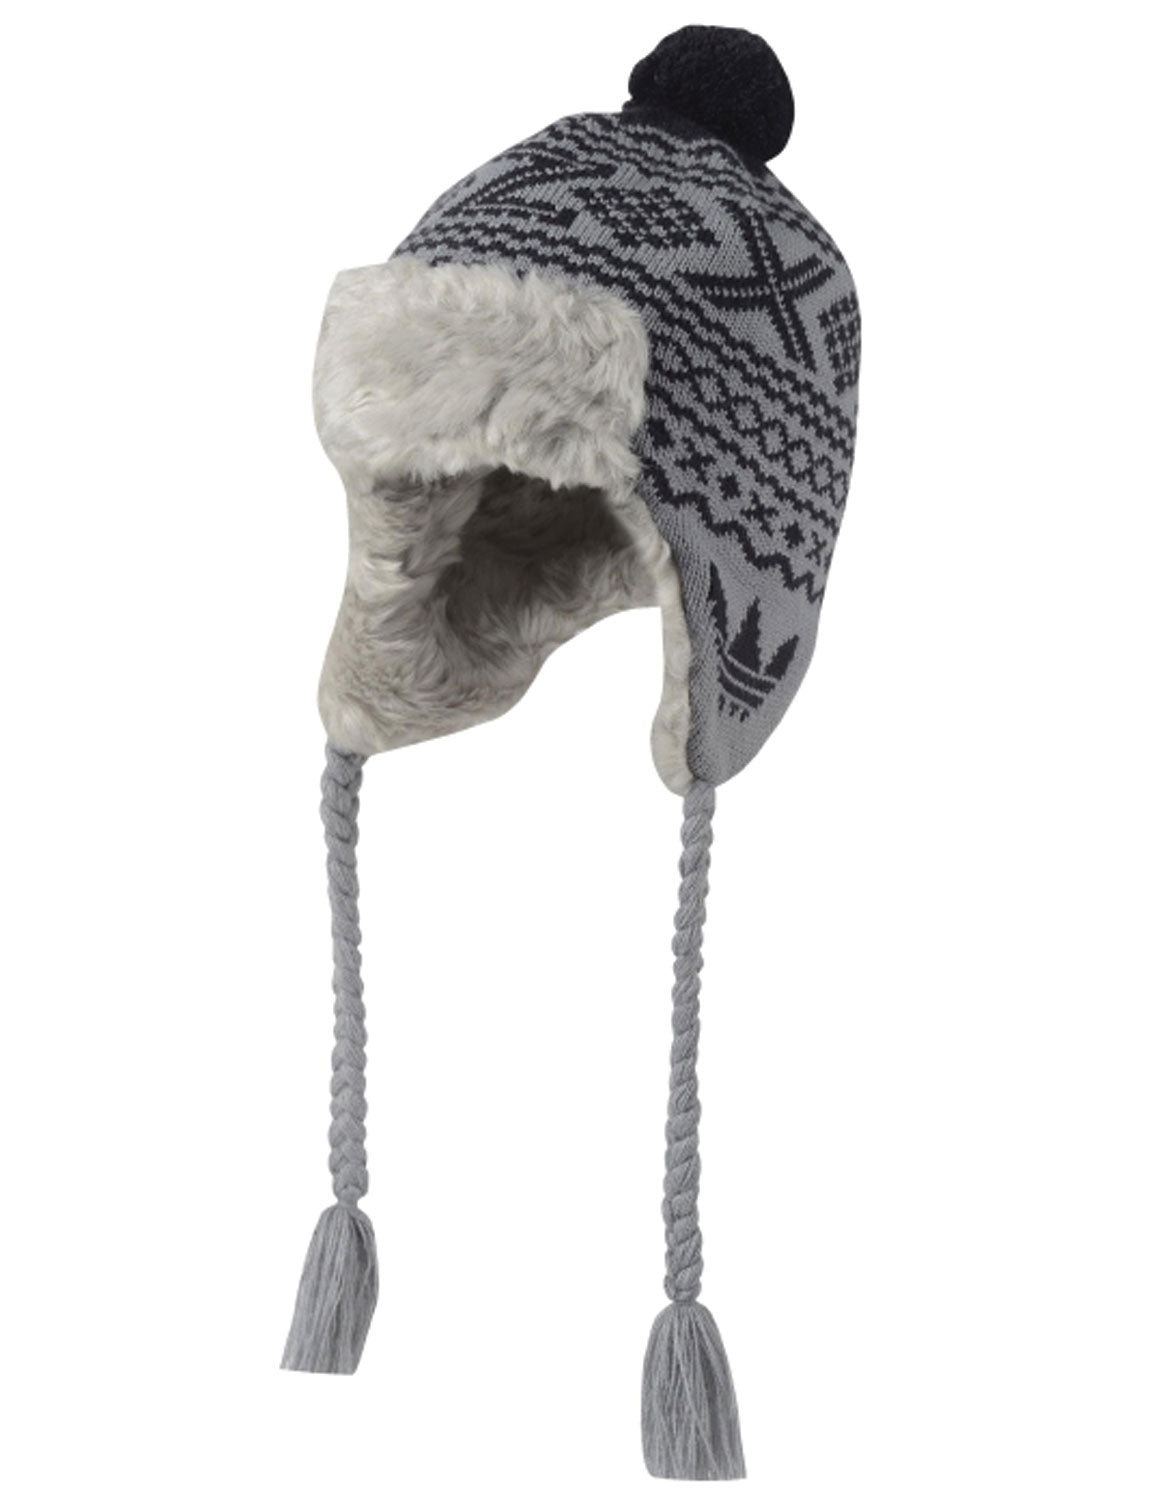 adidas Originals ZX Pershanka Beanie Pompom Winter Hat G8676